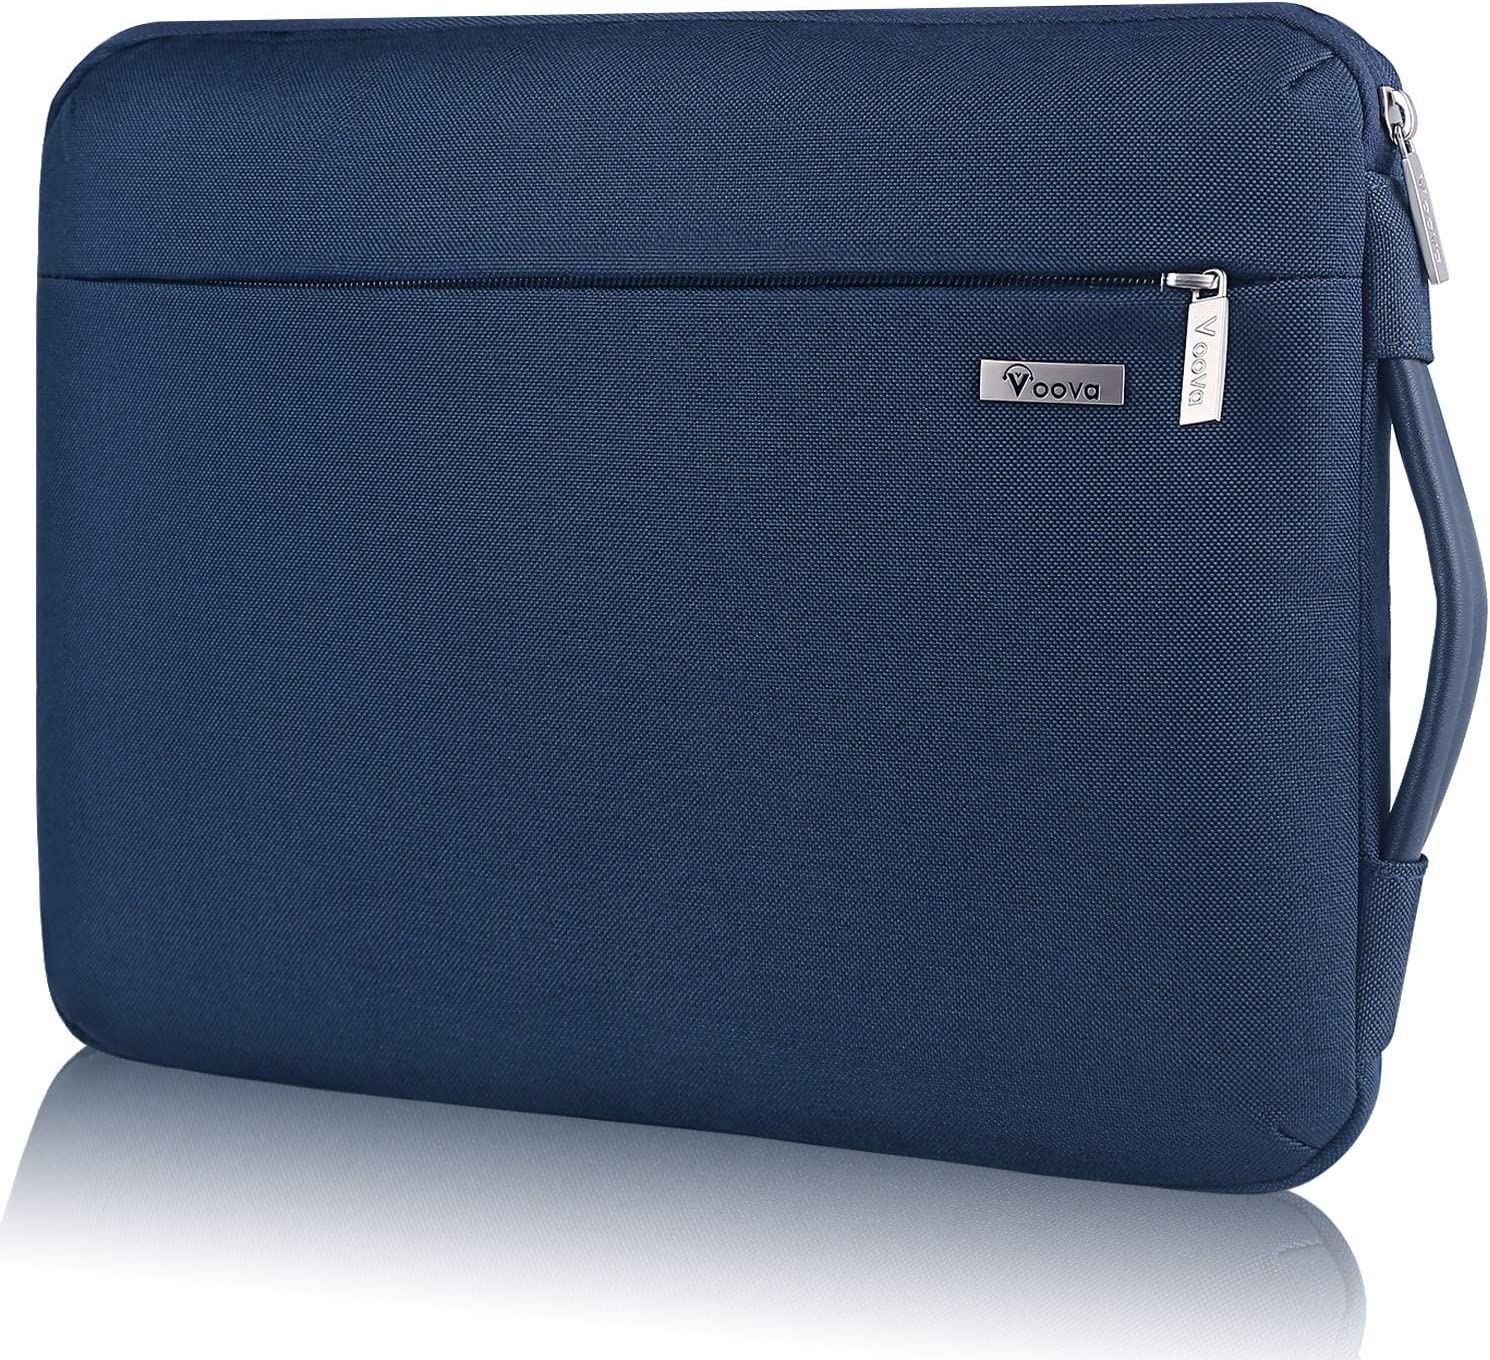 "Voova Laptop Sleeve Case 15 15.6 inch with Handle, Upgrade 360° Protective Computer Cover Compatible New 16"" MacBook Pro/Surface Book 3 2, 14 in Chormebook Cover with Organizer Pocket, Blue"